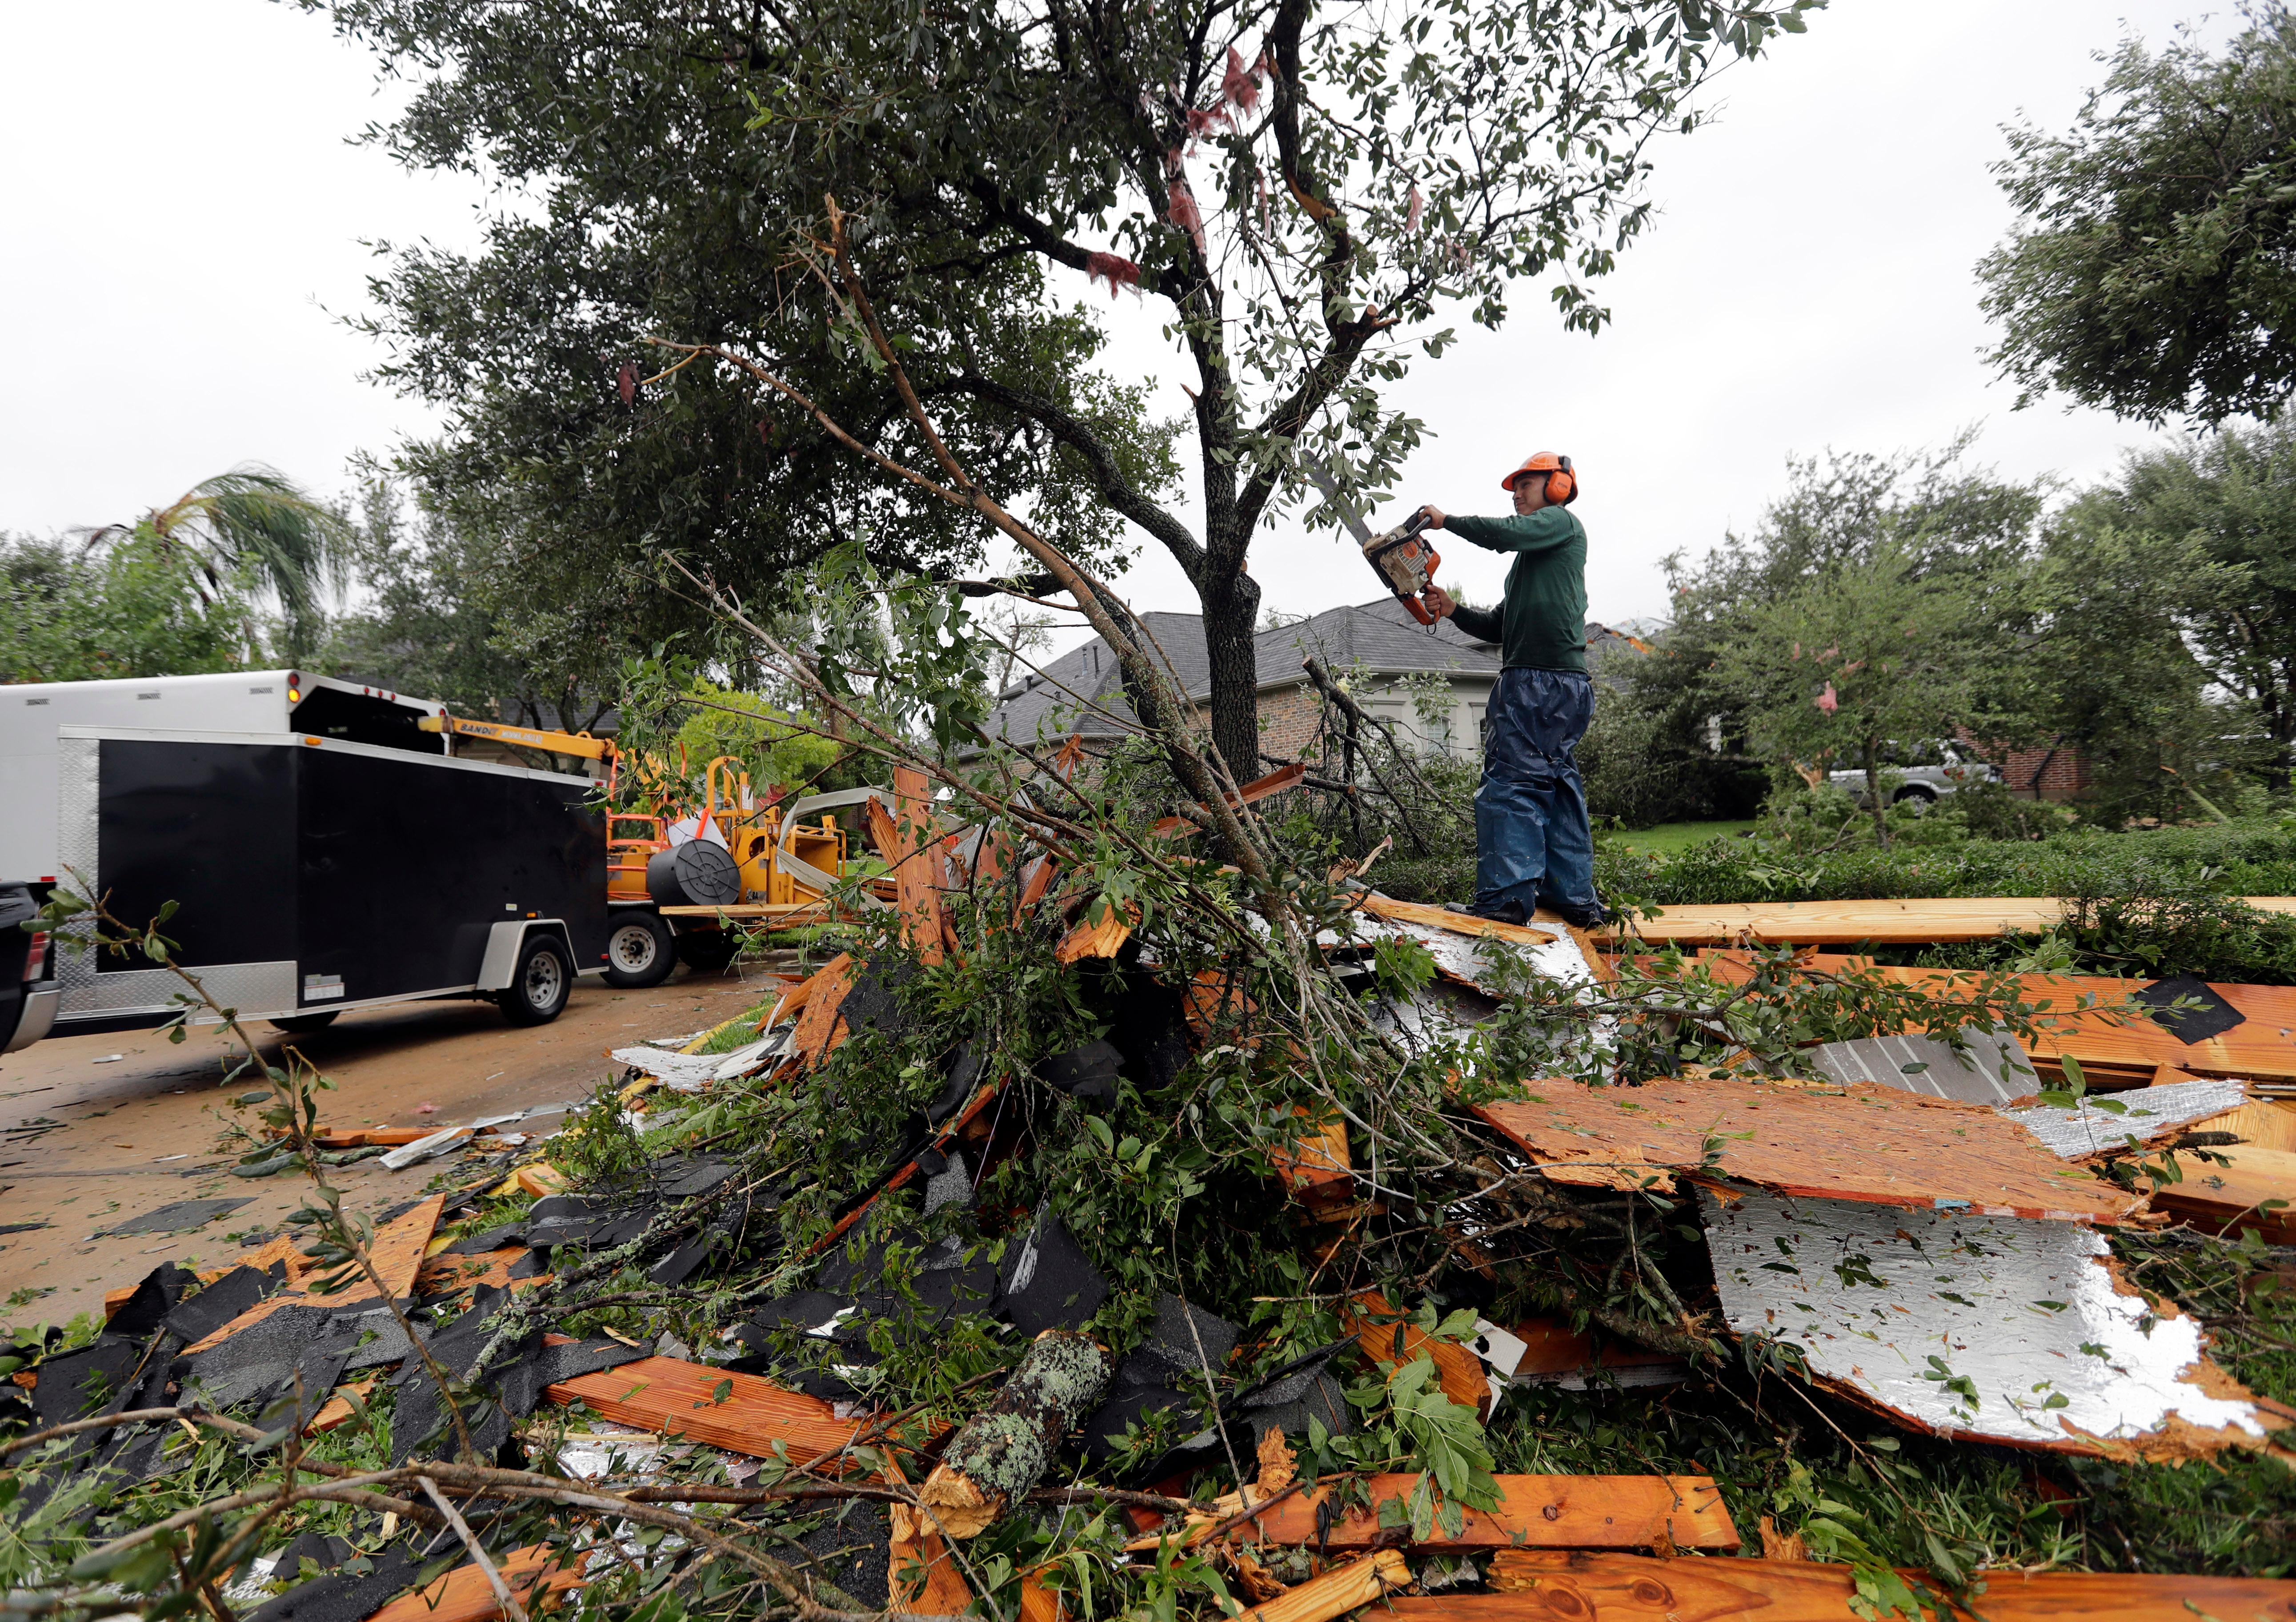 Henry Isaac cuts down broken tree limbs after  Hurricane Harvey Saturday, Aug. 26, 2017, in Missouri City, Texas.  Harvey rolled over the Texas Gulf Coast on Saturday, smashing homes and businesses and lashing the shore with wind and rain so intense that drivers were forced off the road because they could not see in front of them.  (AP Photo/David J. Phillip)